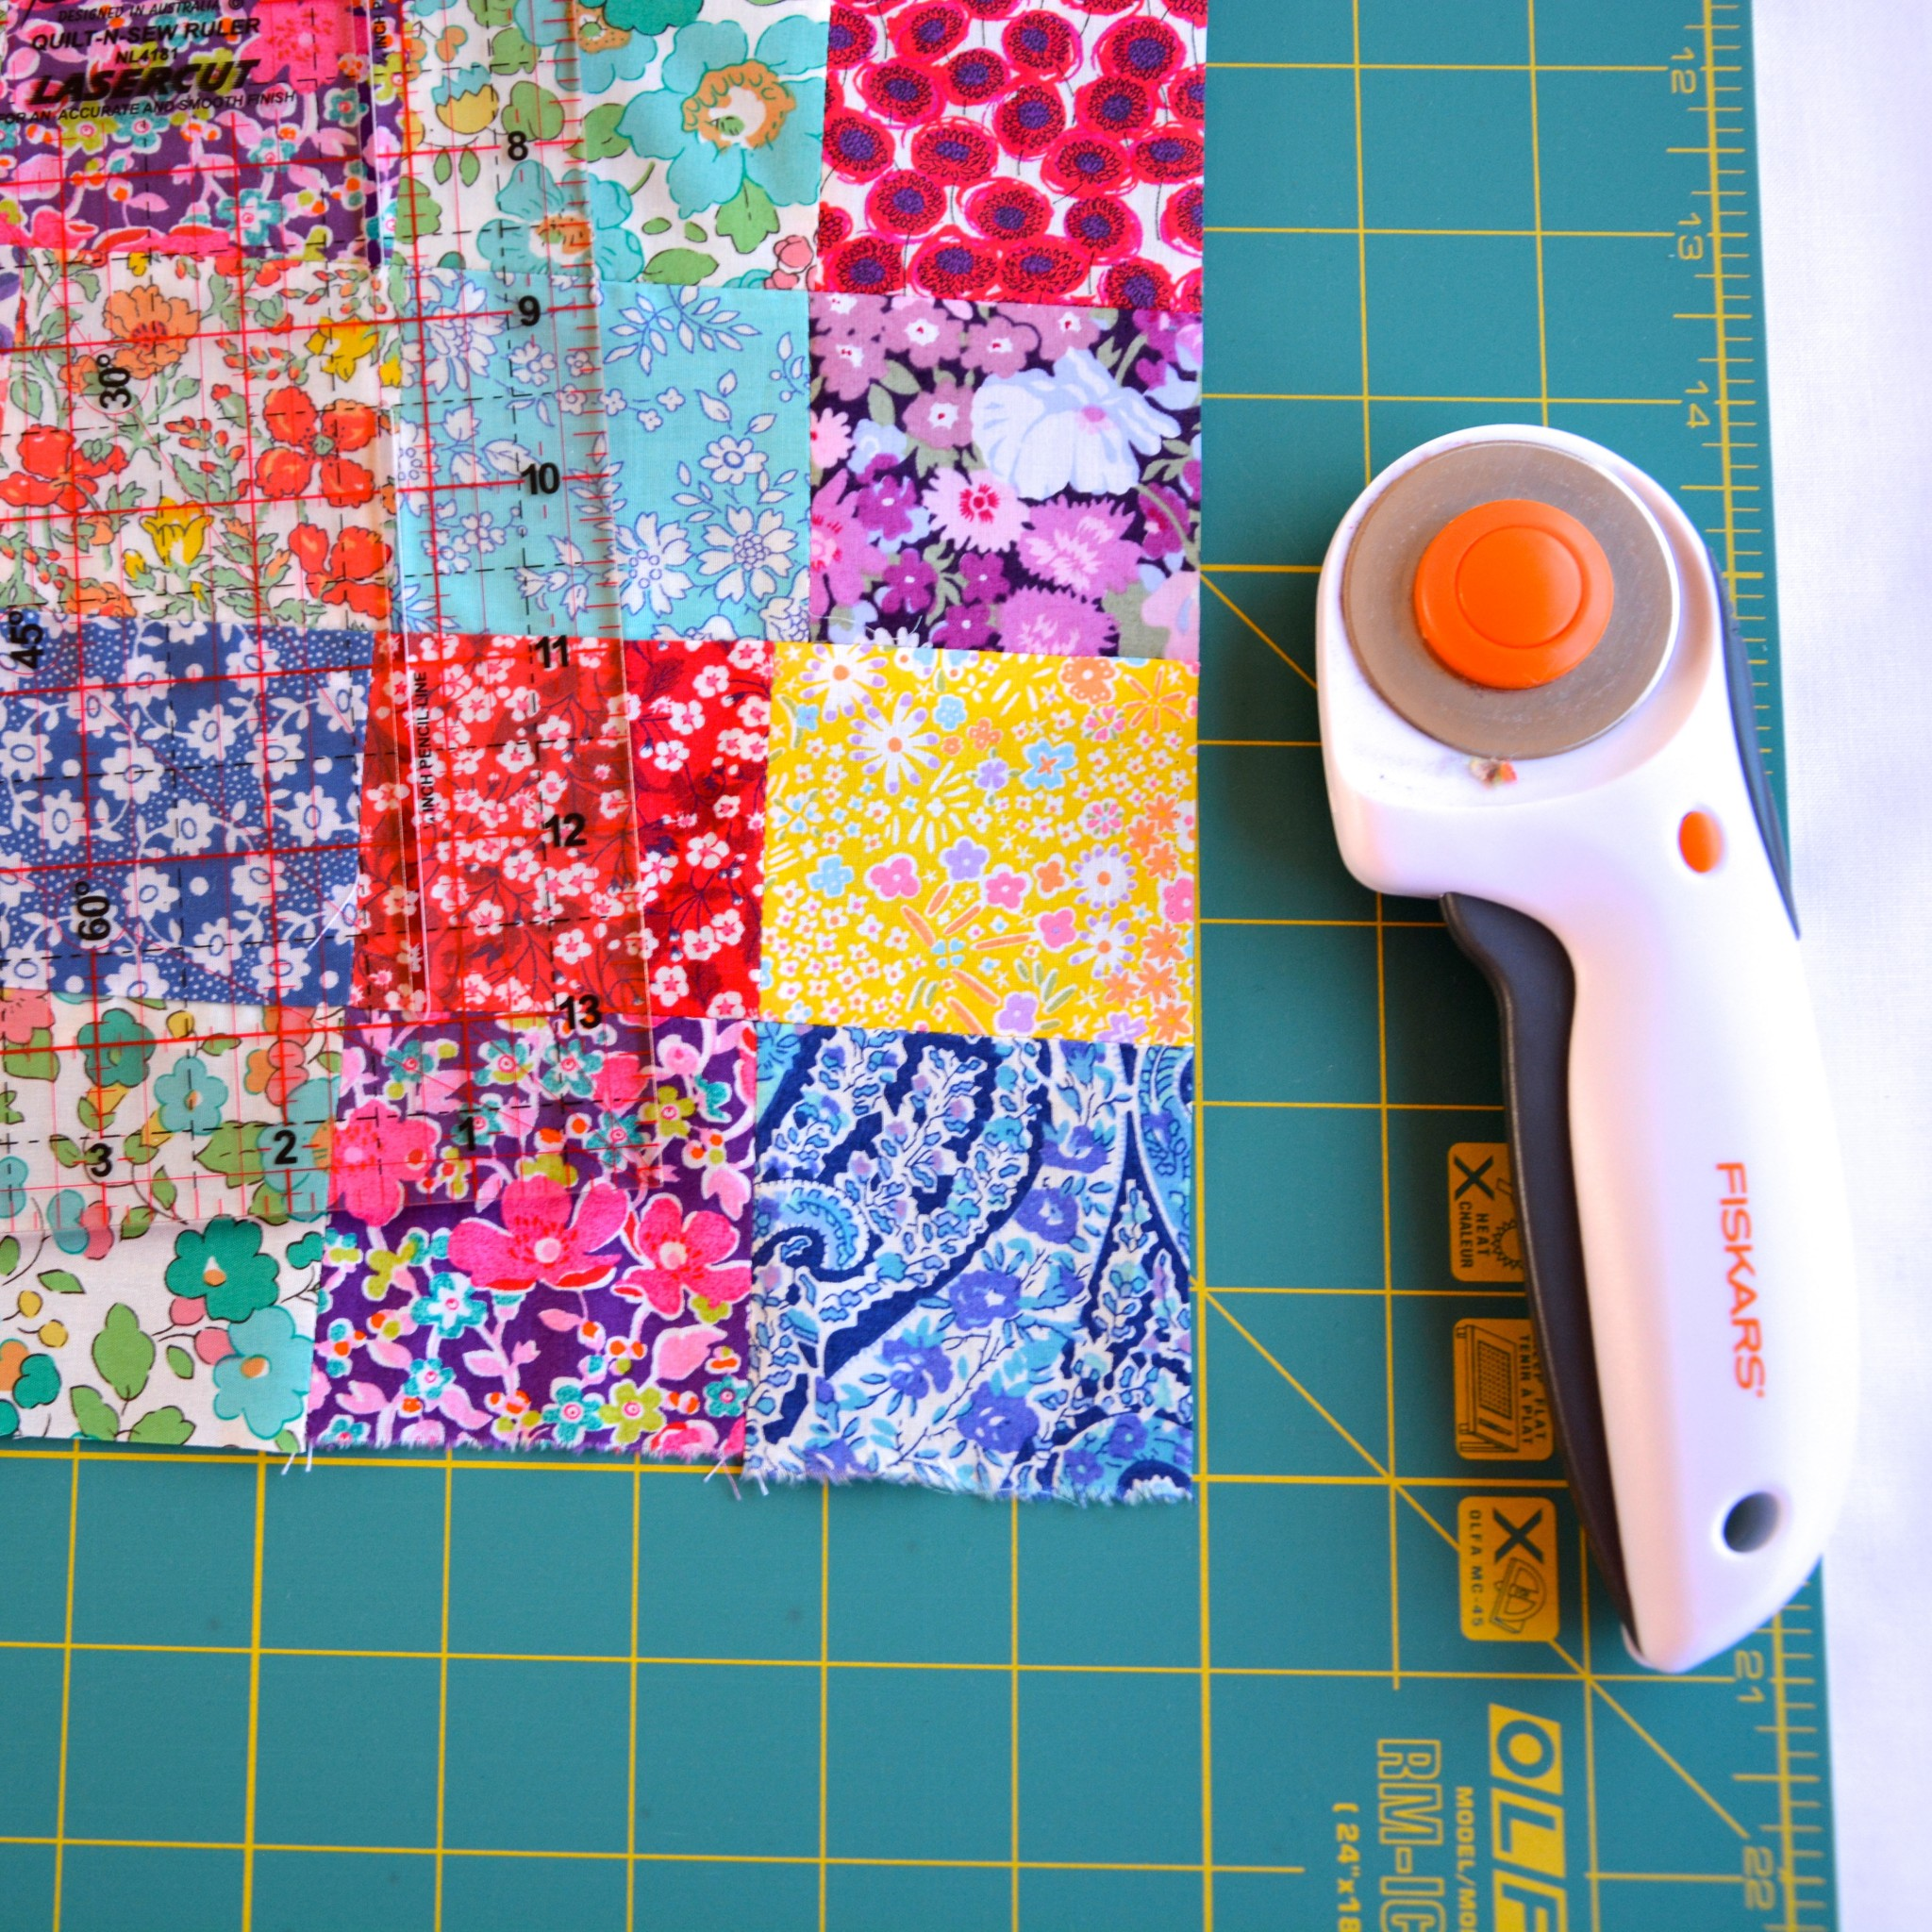 Neaten the edges of the patchwork